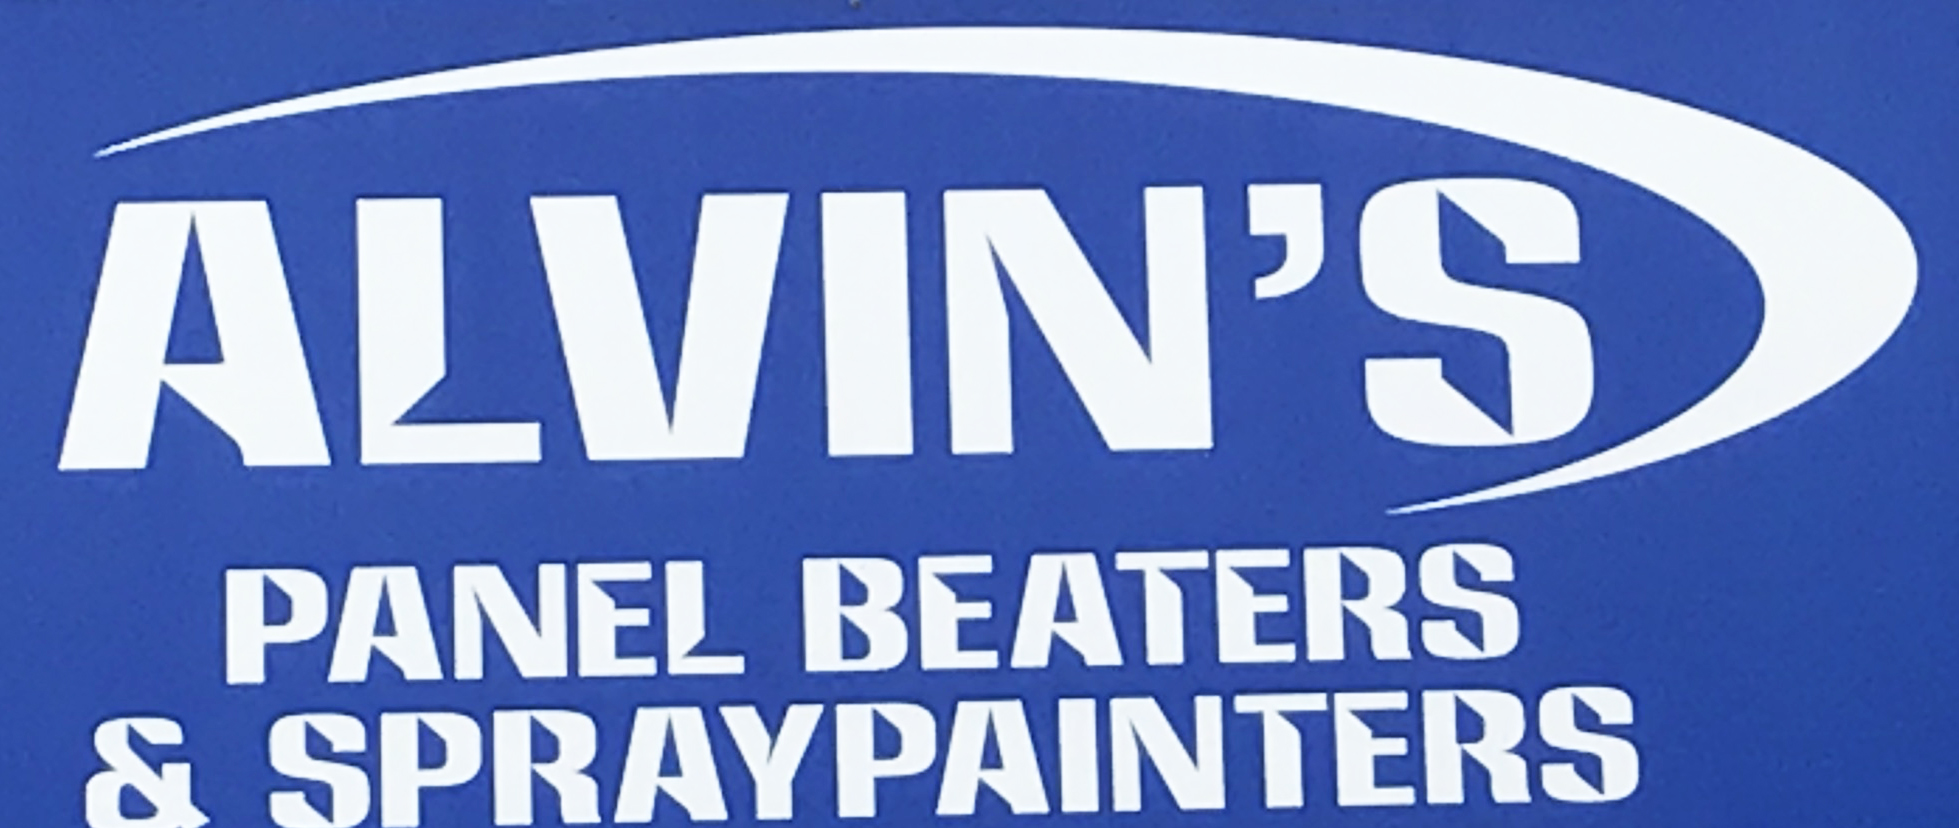 Logo of Alvin's Panel Beaters & Spraypainters